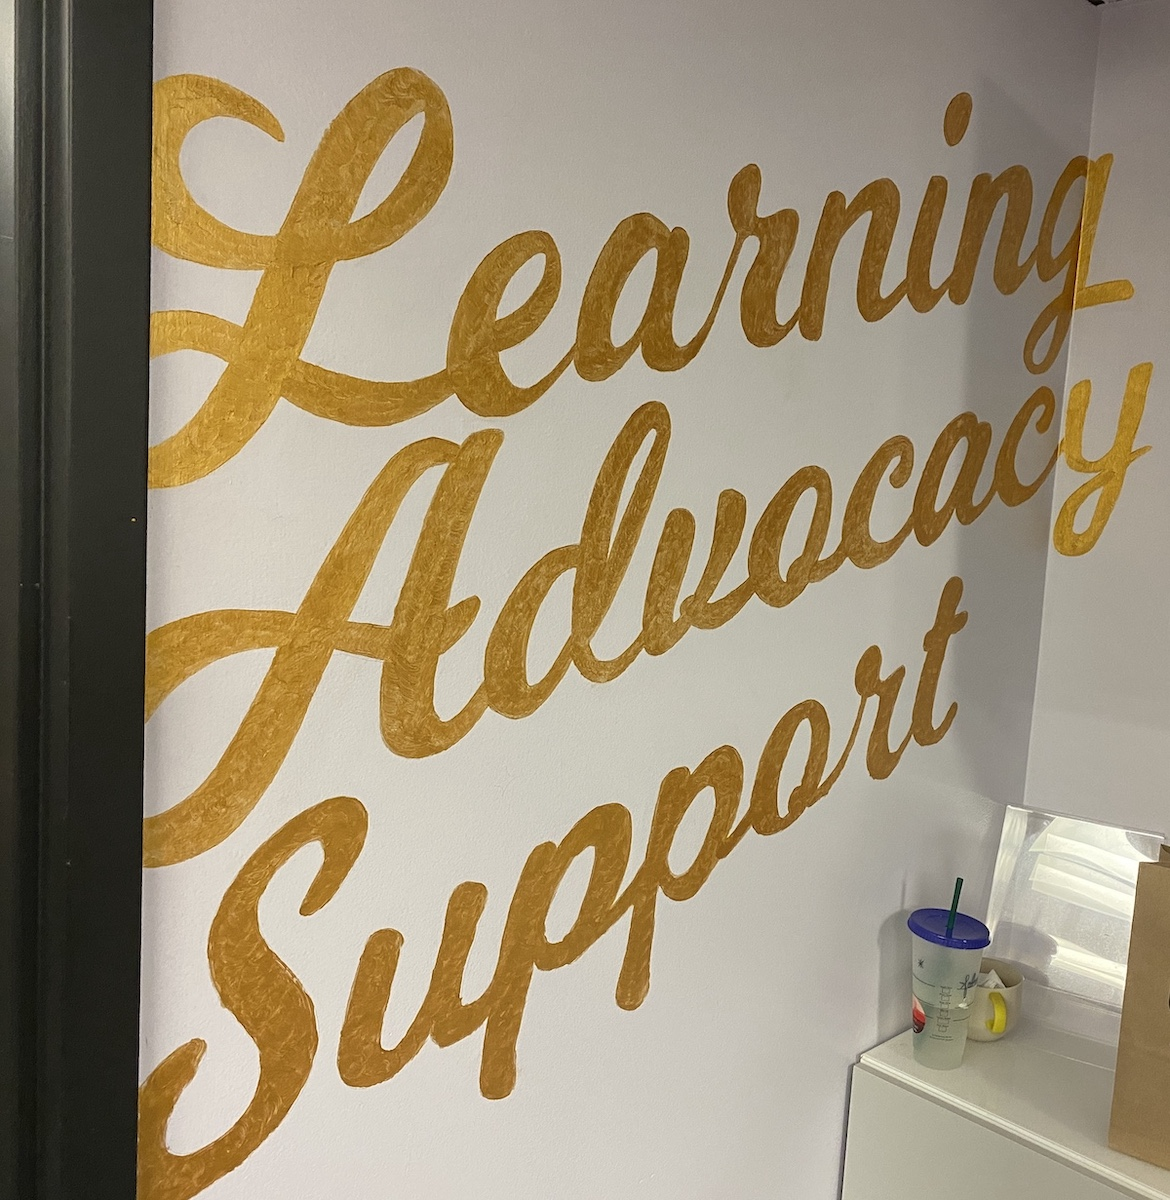 The walls of Carleton University's Womxn's Centre read learning, advocacy, and support for survivors of sexual violence.